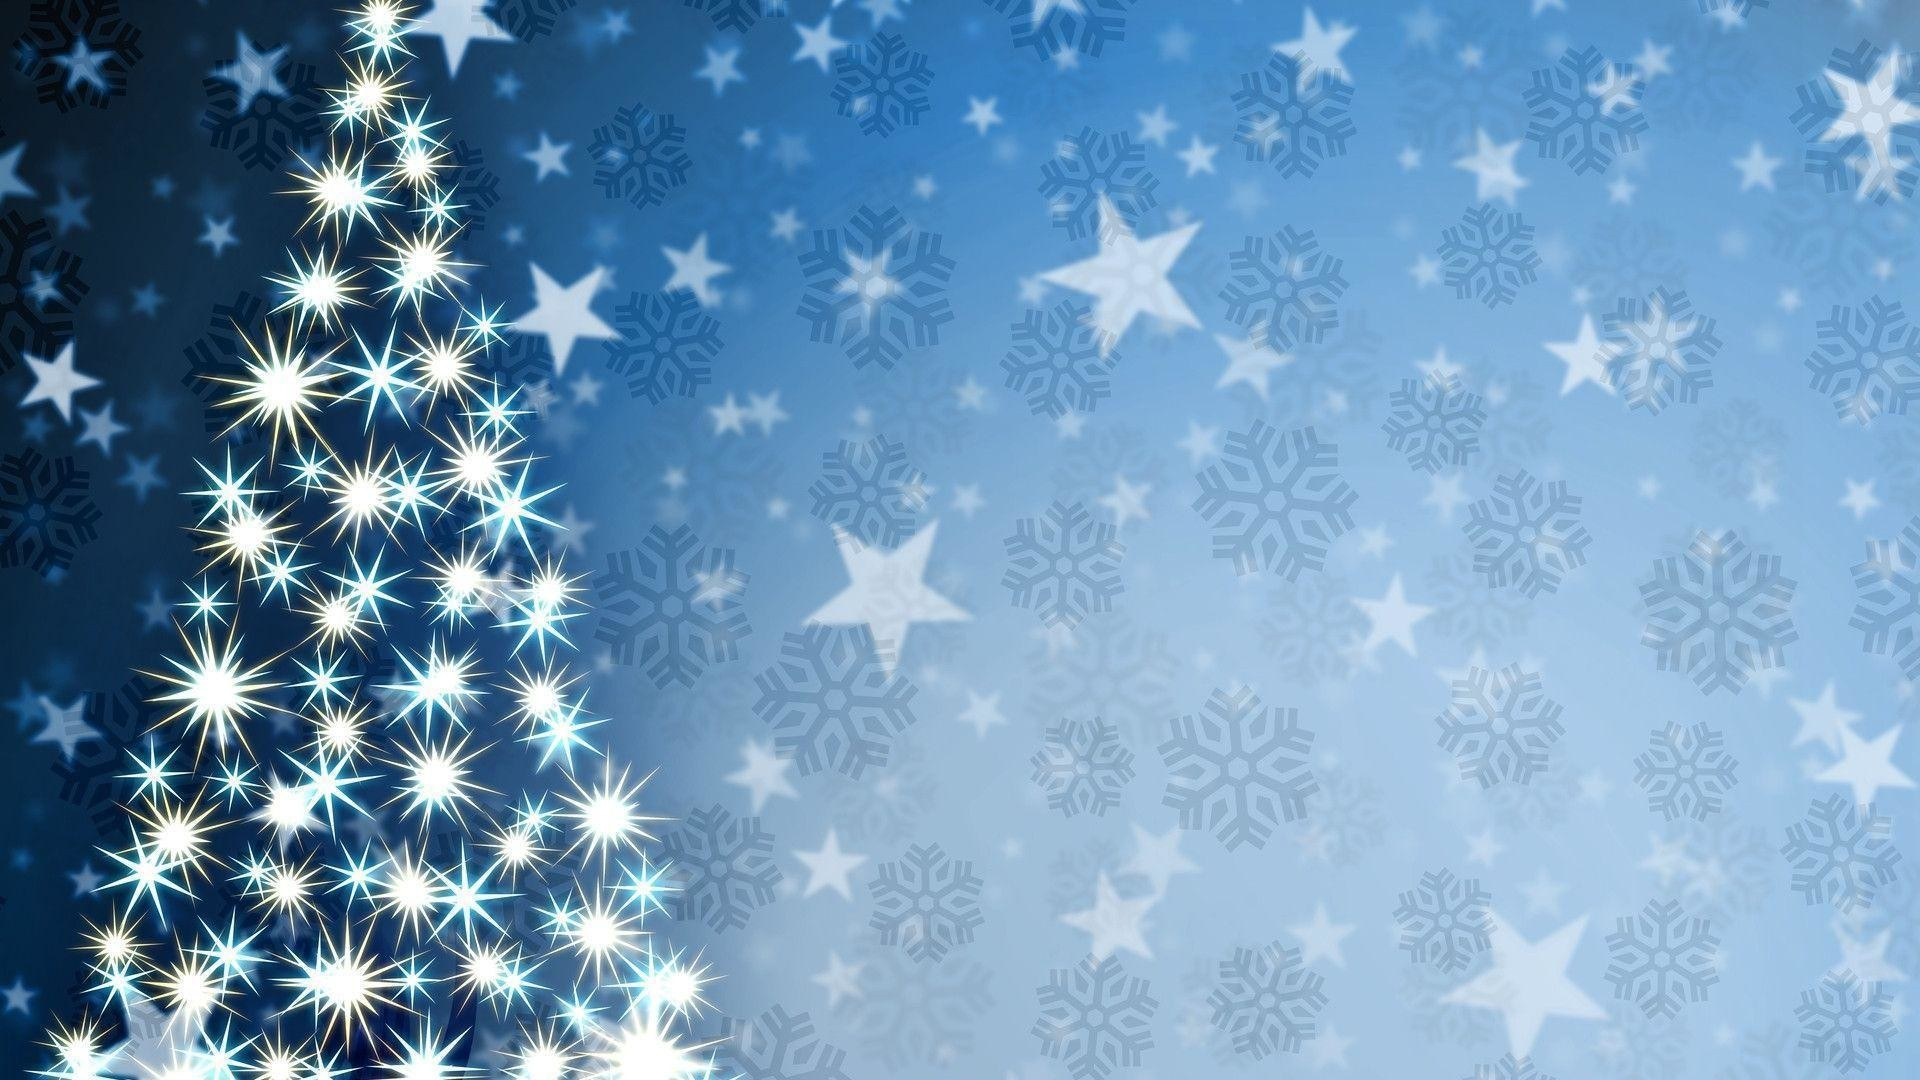 Christmas Star Background (41+ images)